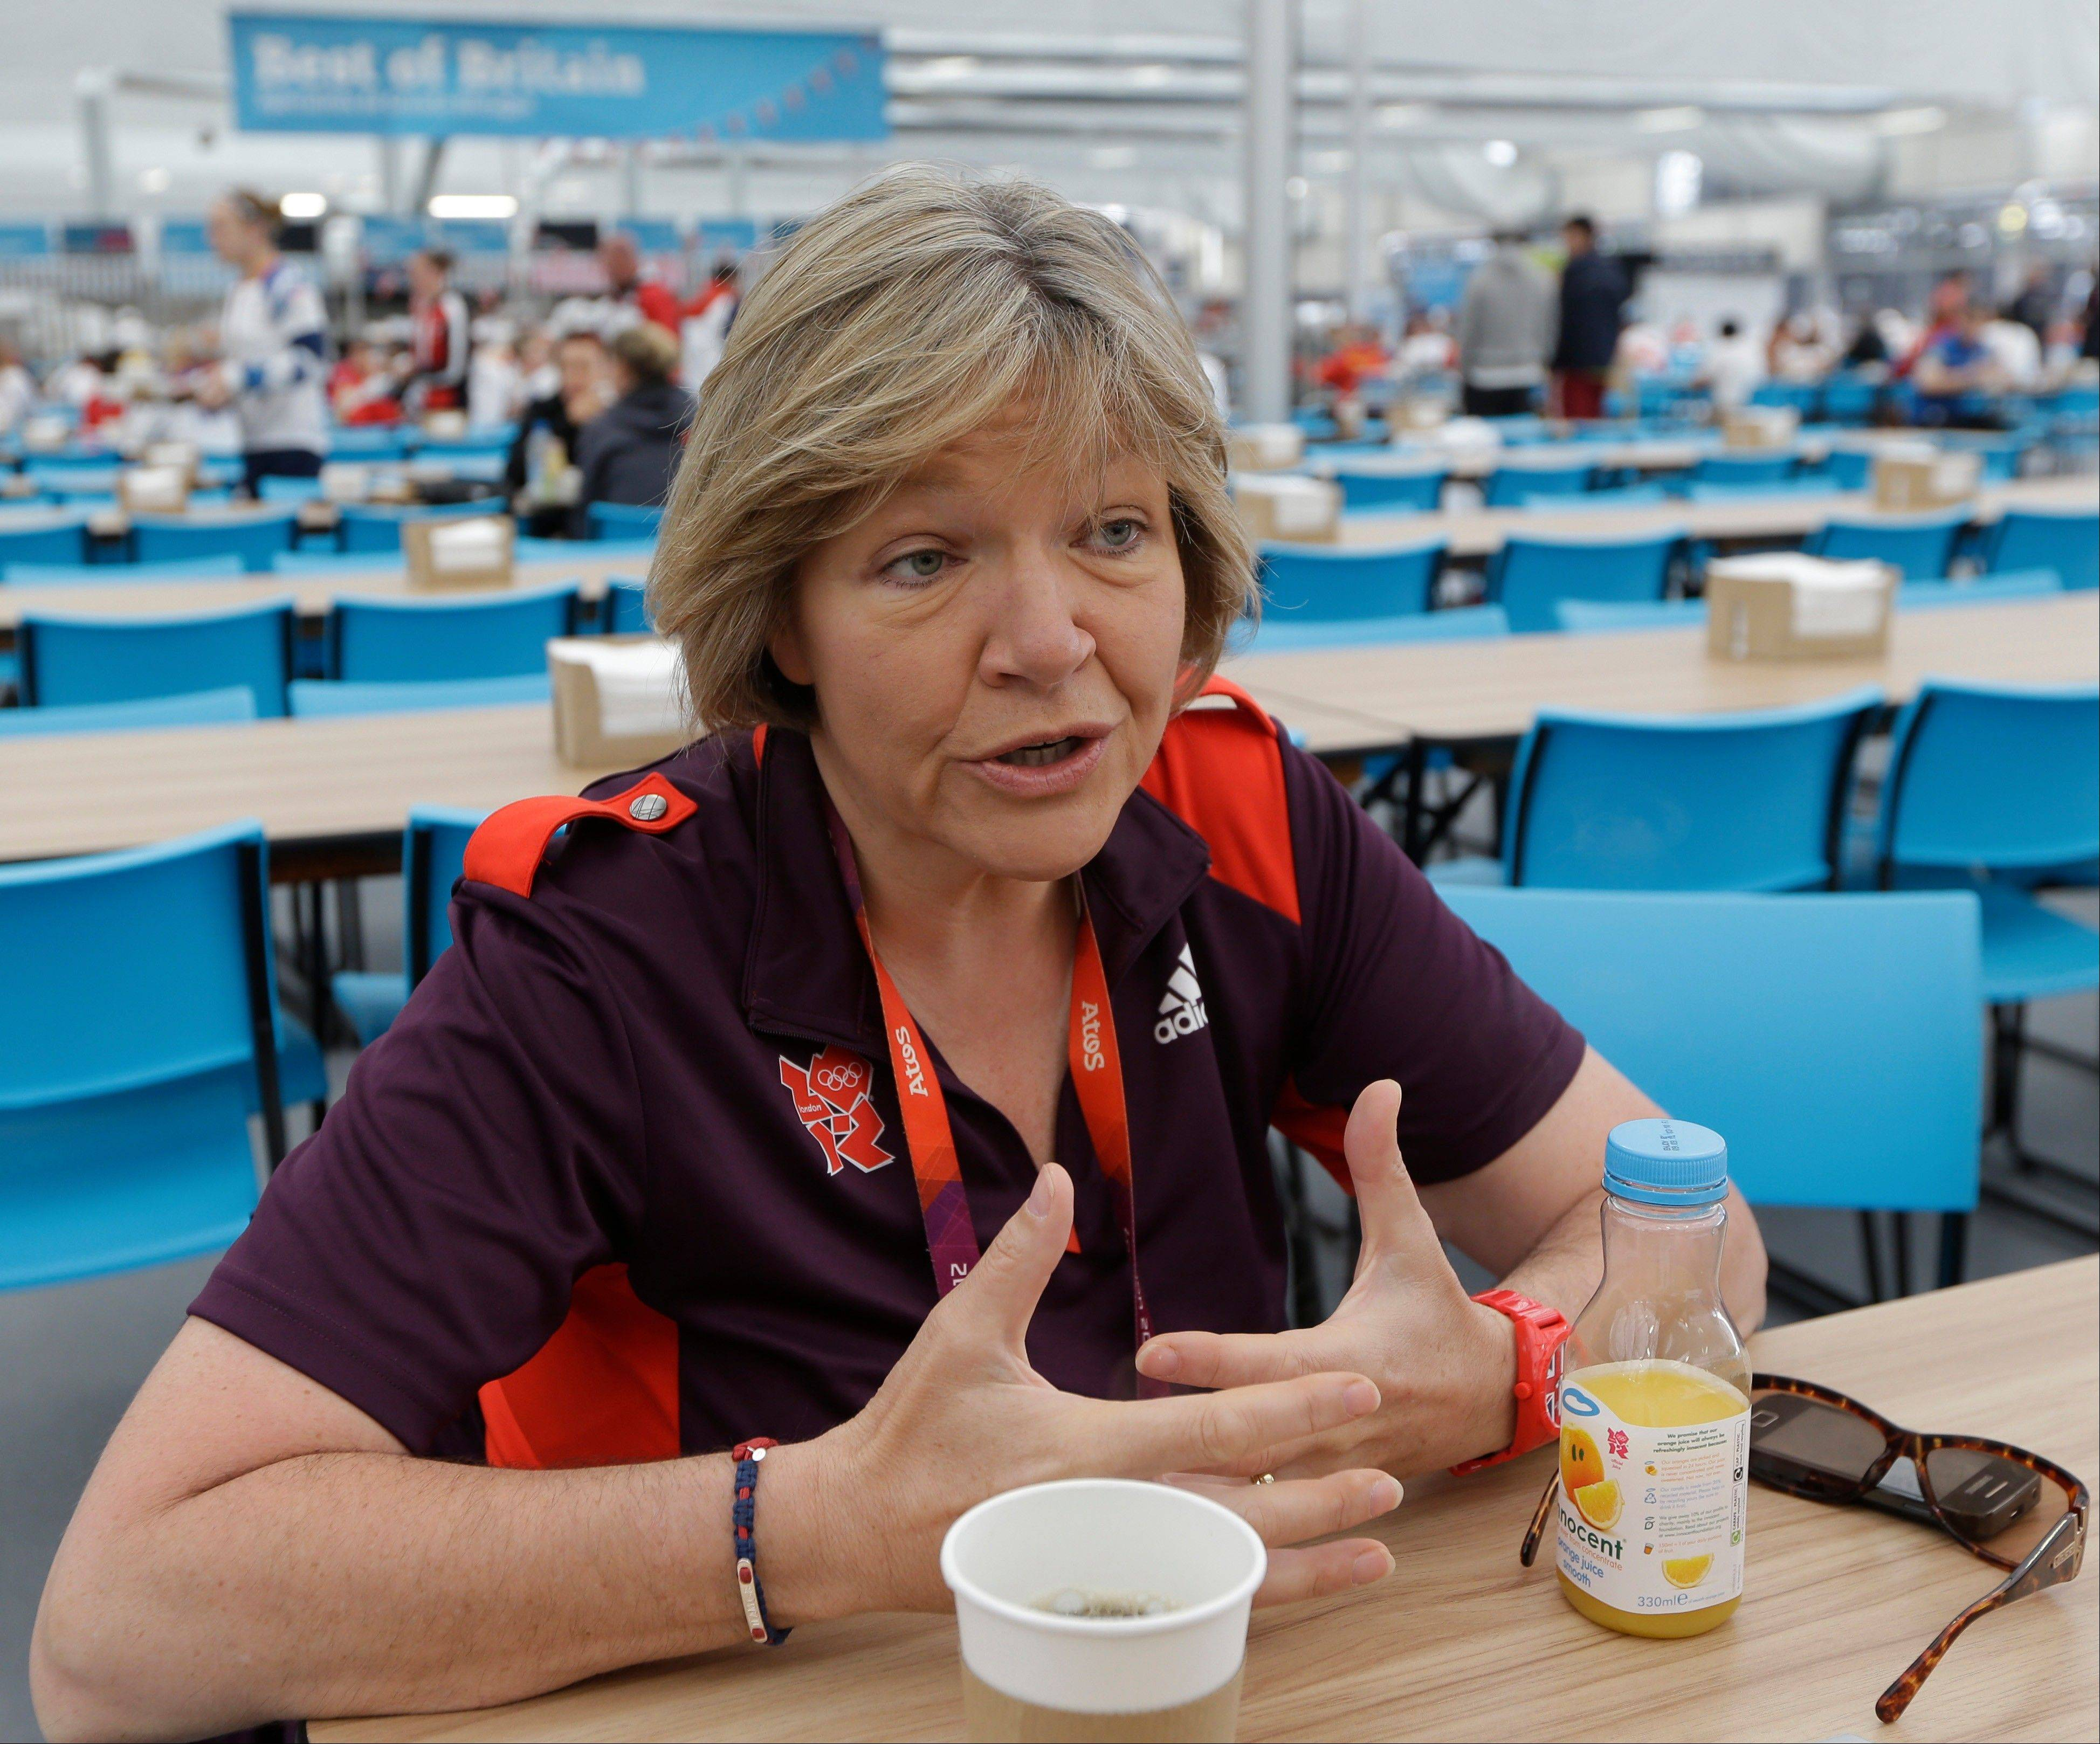 Jan Matthews, Head of Catering, Cleaning and Waste at the Olympic Village talks to the Associated Press at the Athletes' Dining Hall at the Olympic Park Tuesday July 31, 2012 in London. The athletes' dining room in the Olympic village is a food court like no other, offering the world's elite athletes healthy, hearty food and fuel, 24 hours a day -- and doing it the Slow Food way.